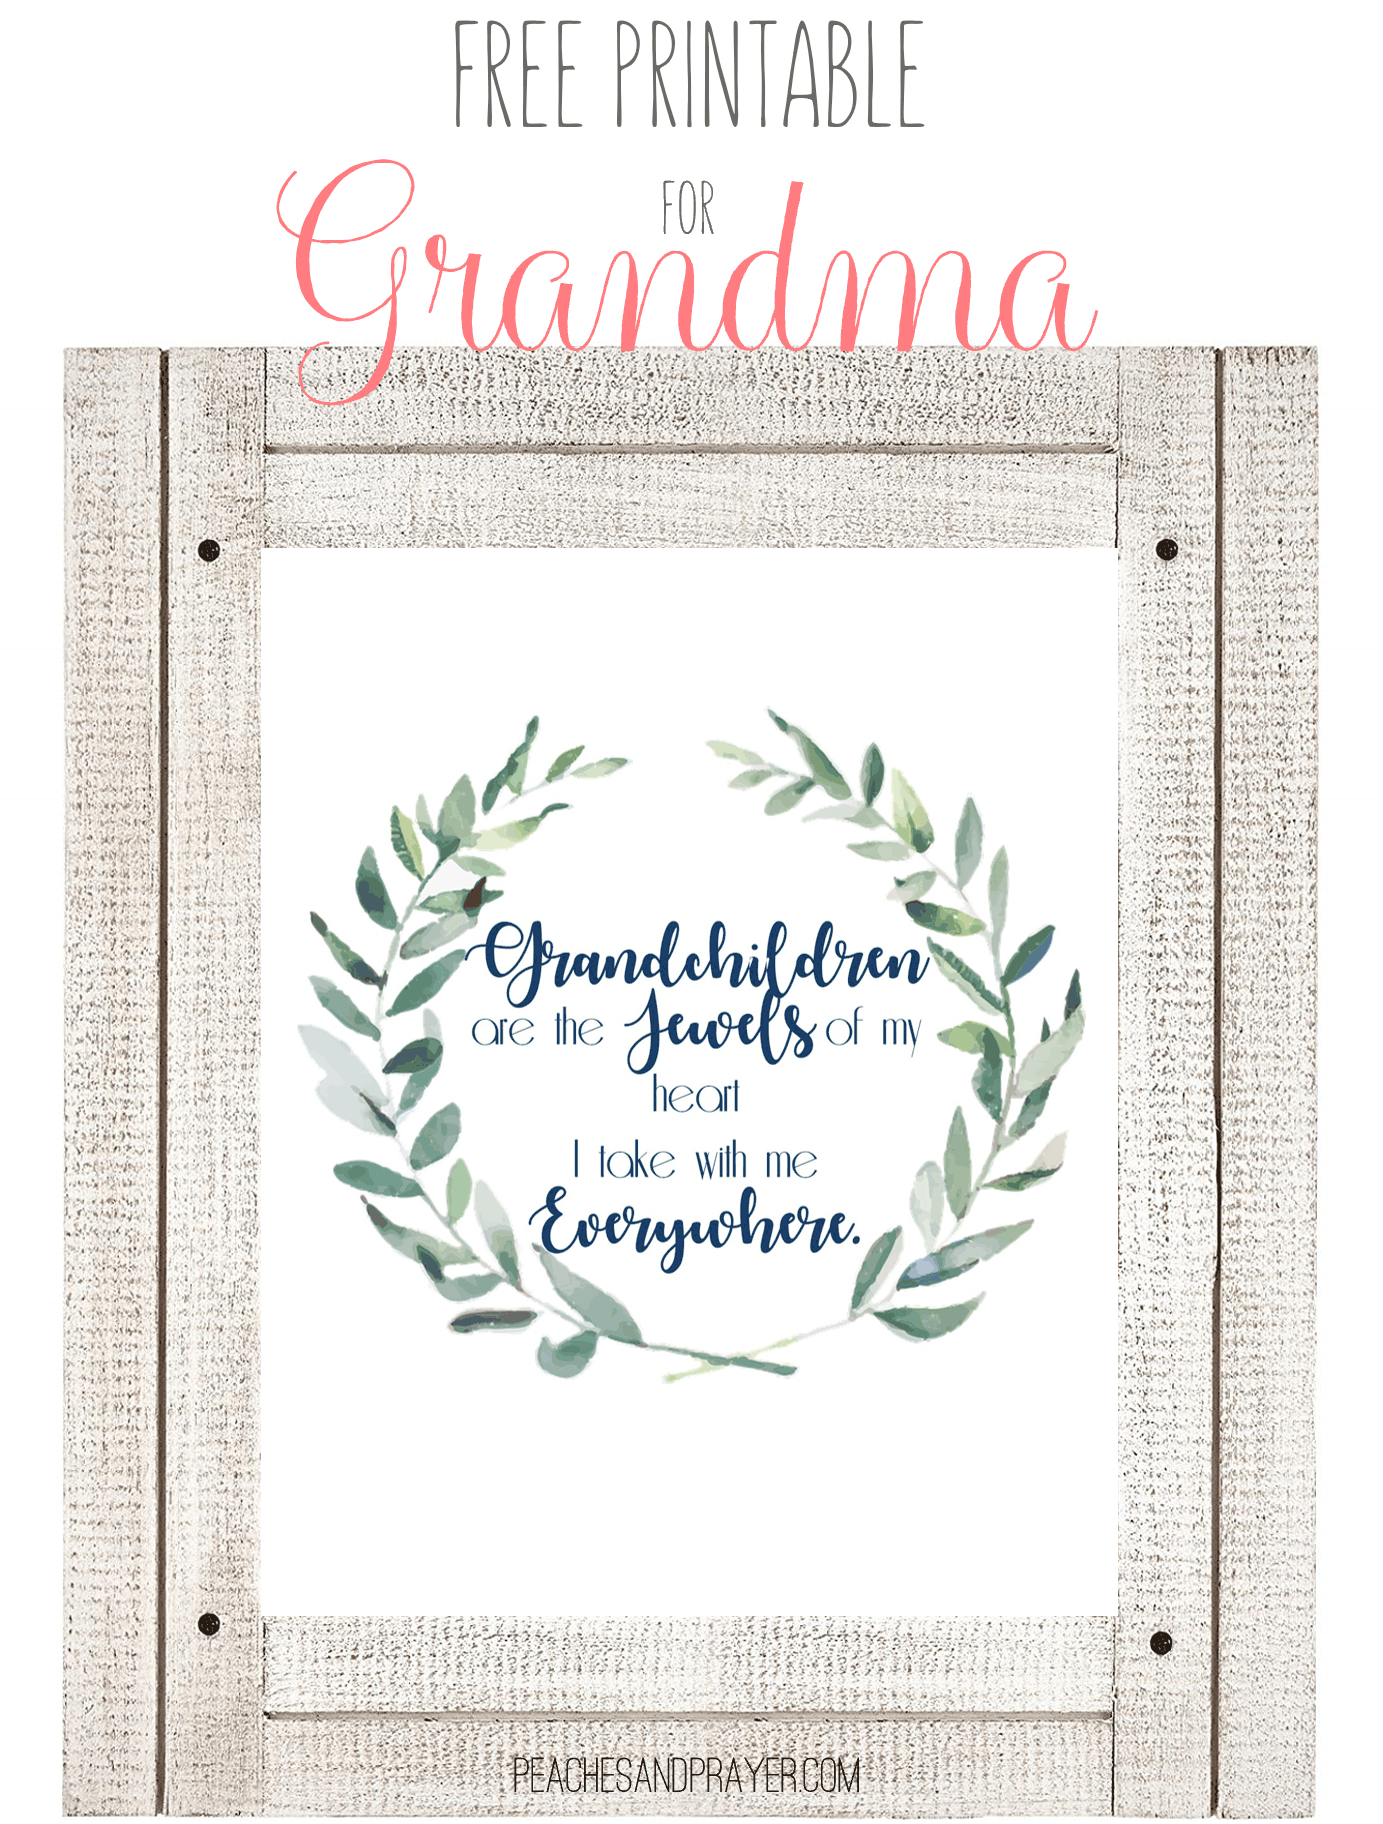 graphic regarding All About My Grandma Printable known as A Significant Present for Grandma - Peaches Prayer